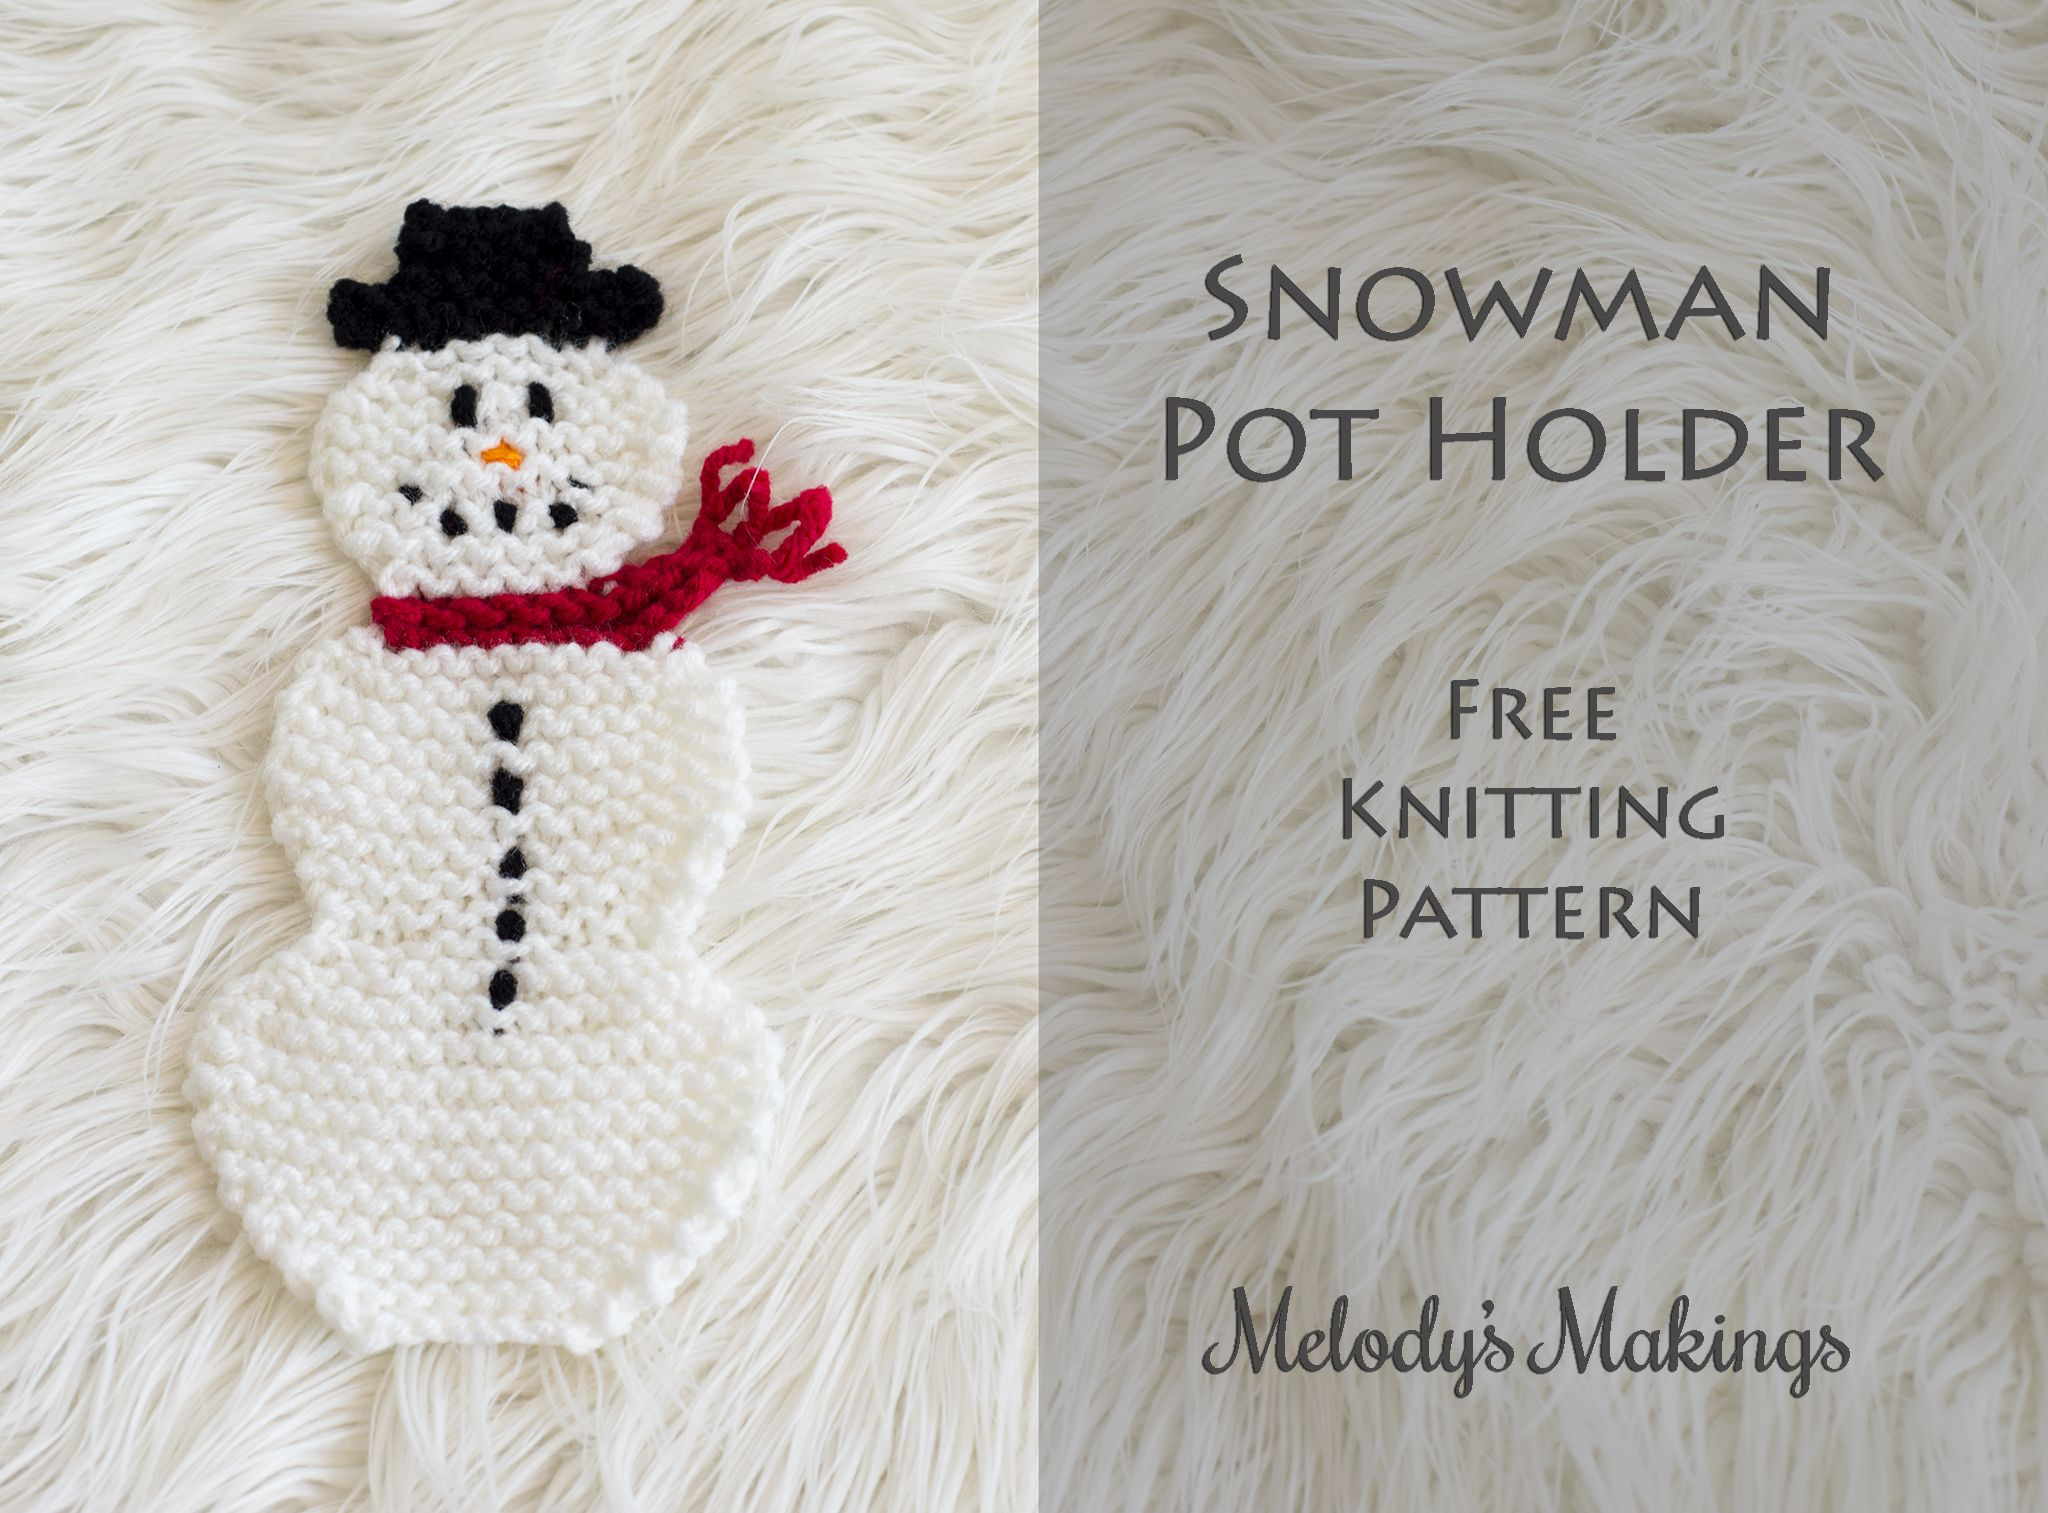 Snowman Pot Holder Free Pattern! (Knit & Crochet) | Melody\'s Makings ...